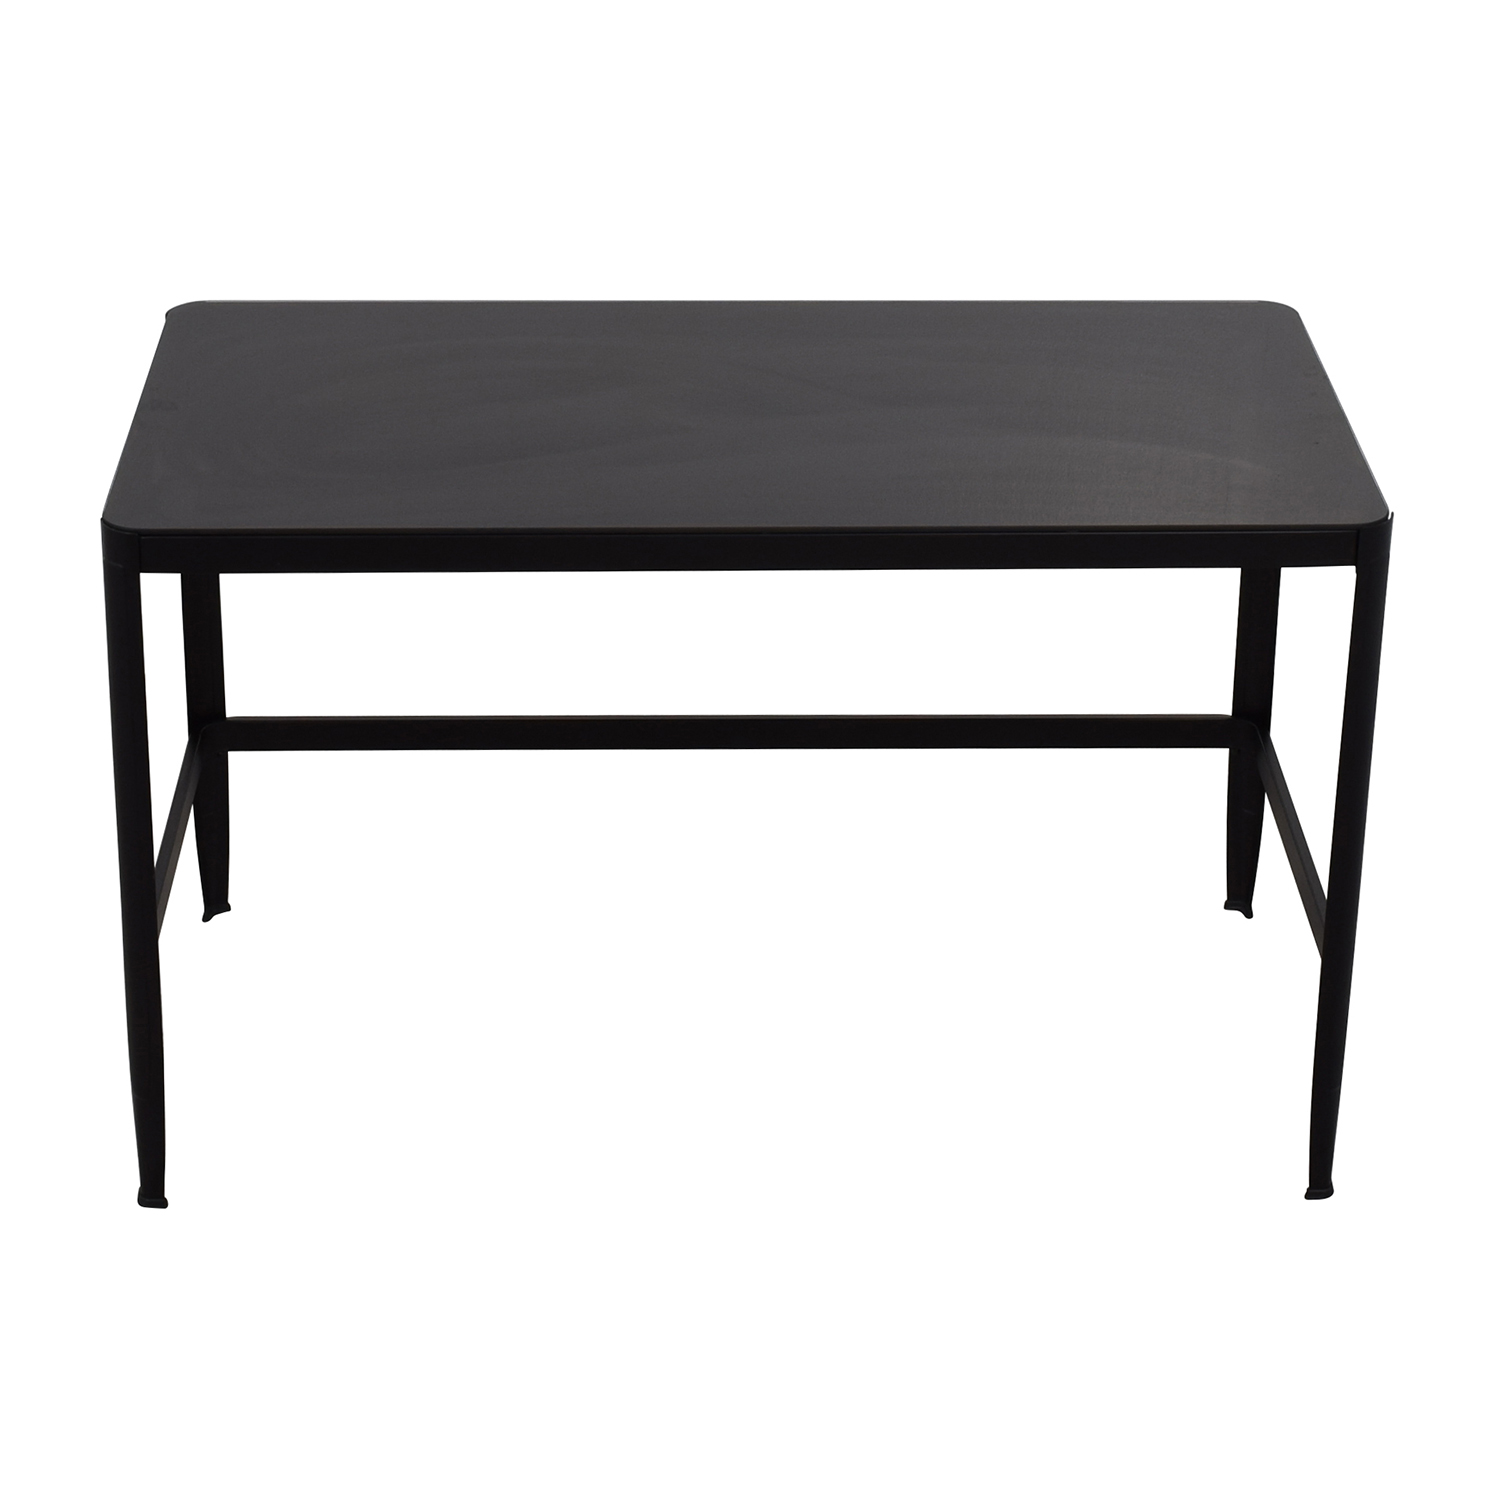 Modern Black Metal Table with Glass Top nyc